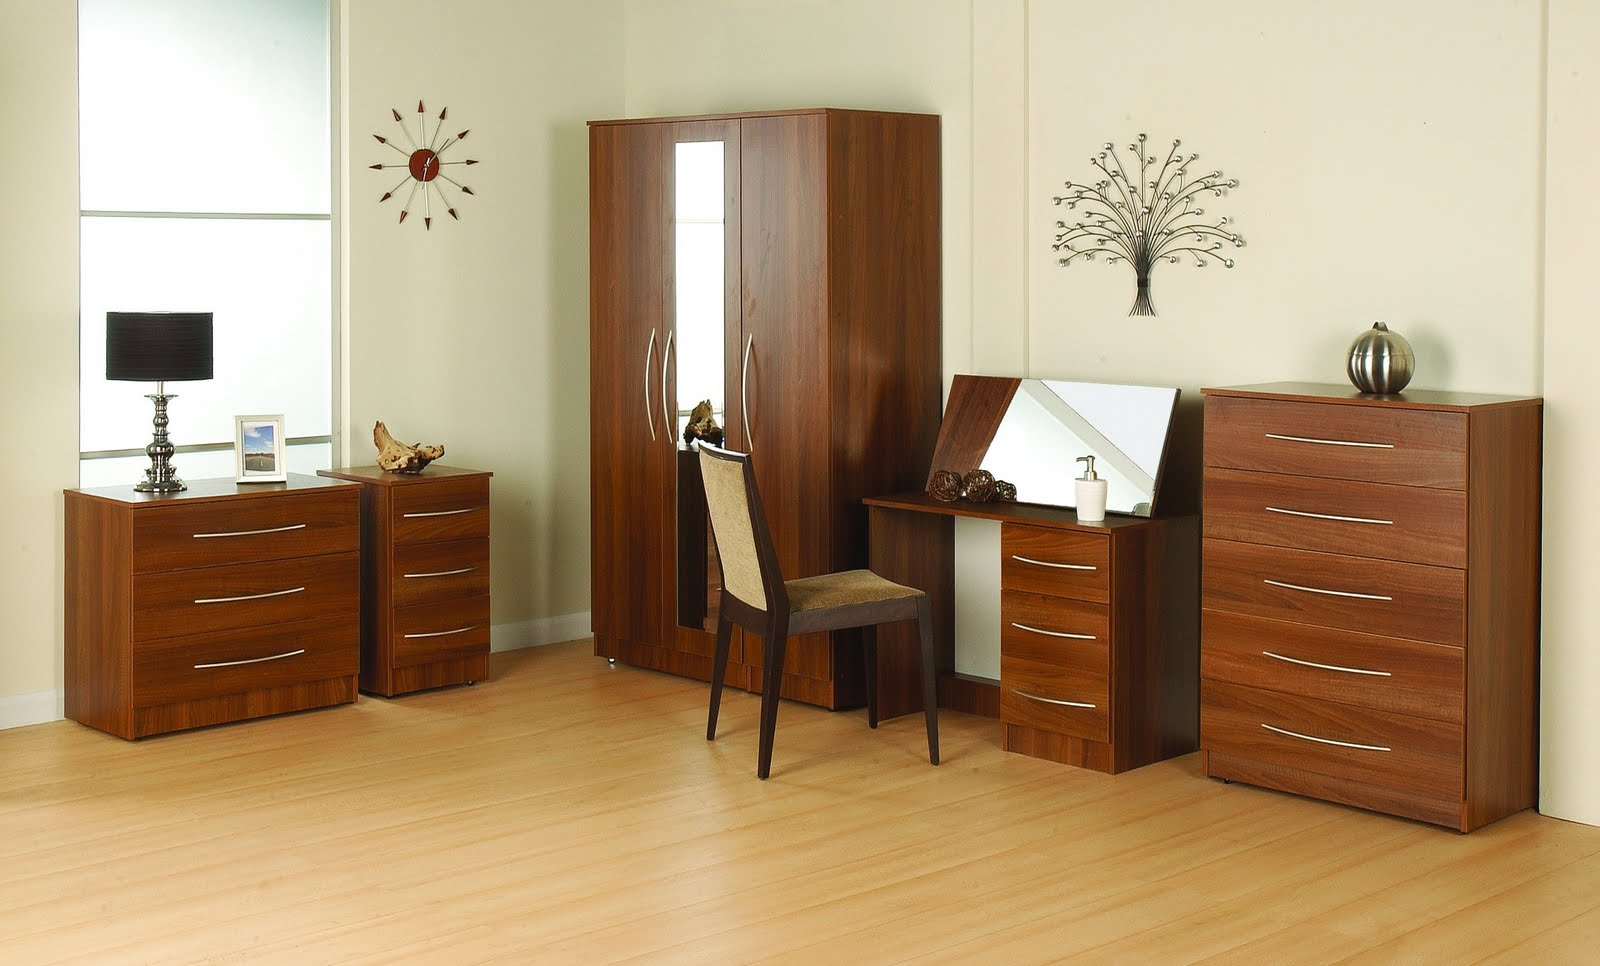 Simple Indian Wardrobes U0026 Furniture Design For Bedroom Part 50